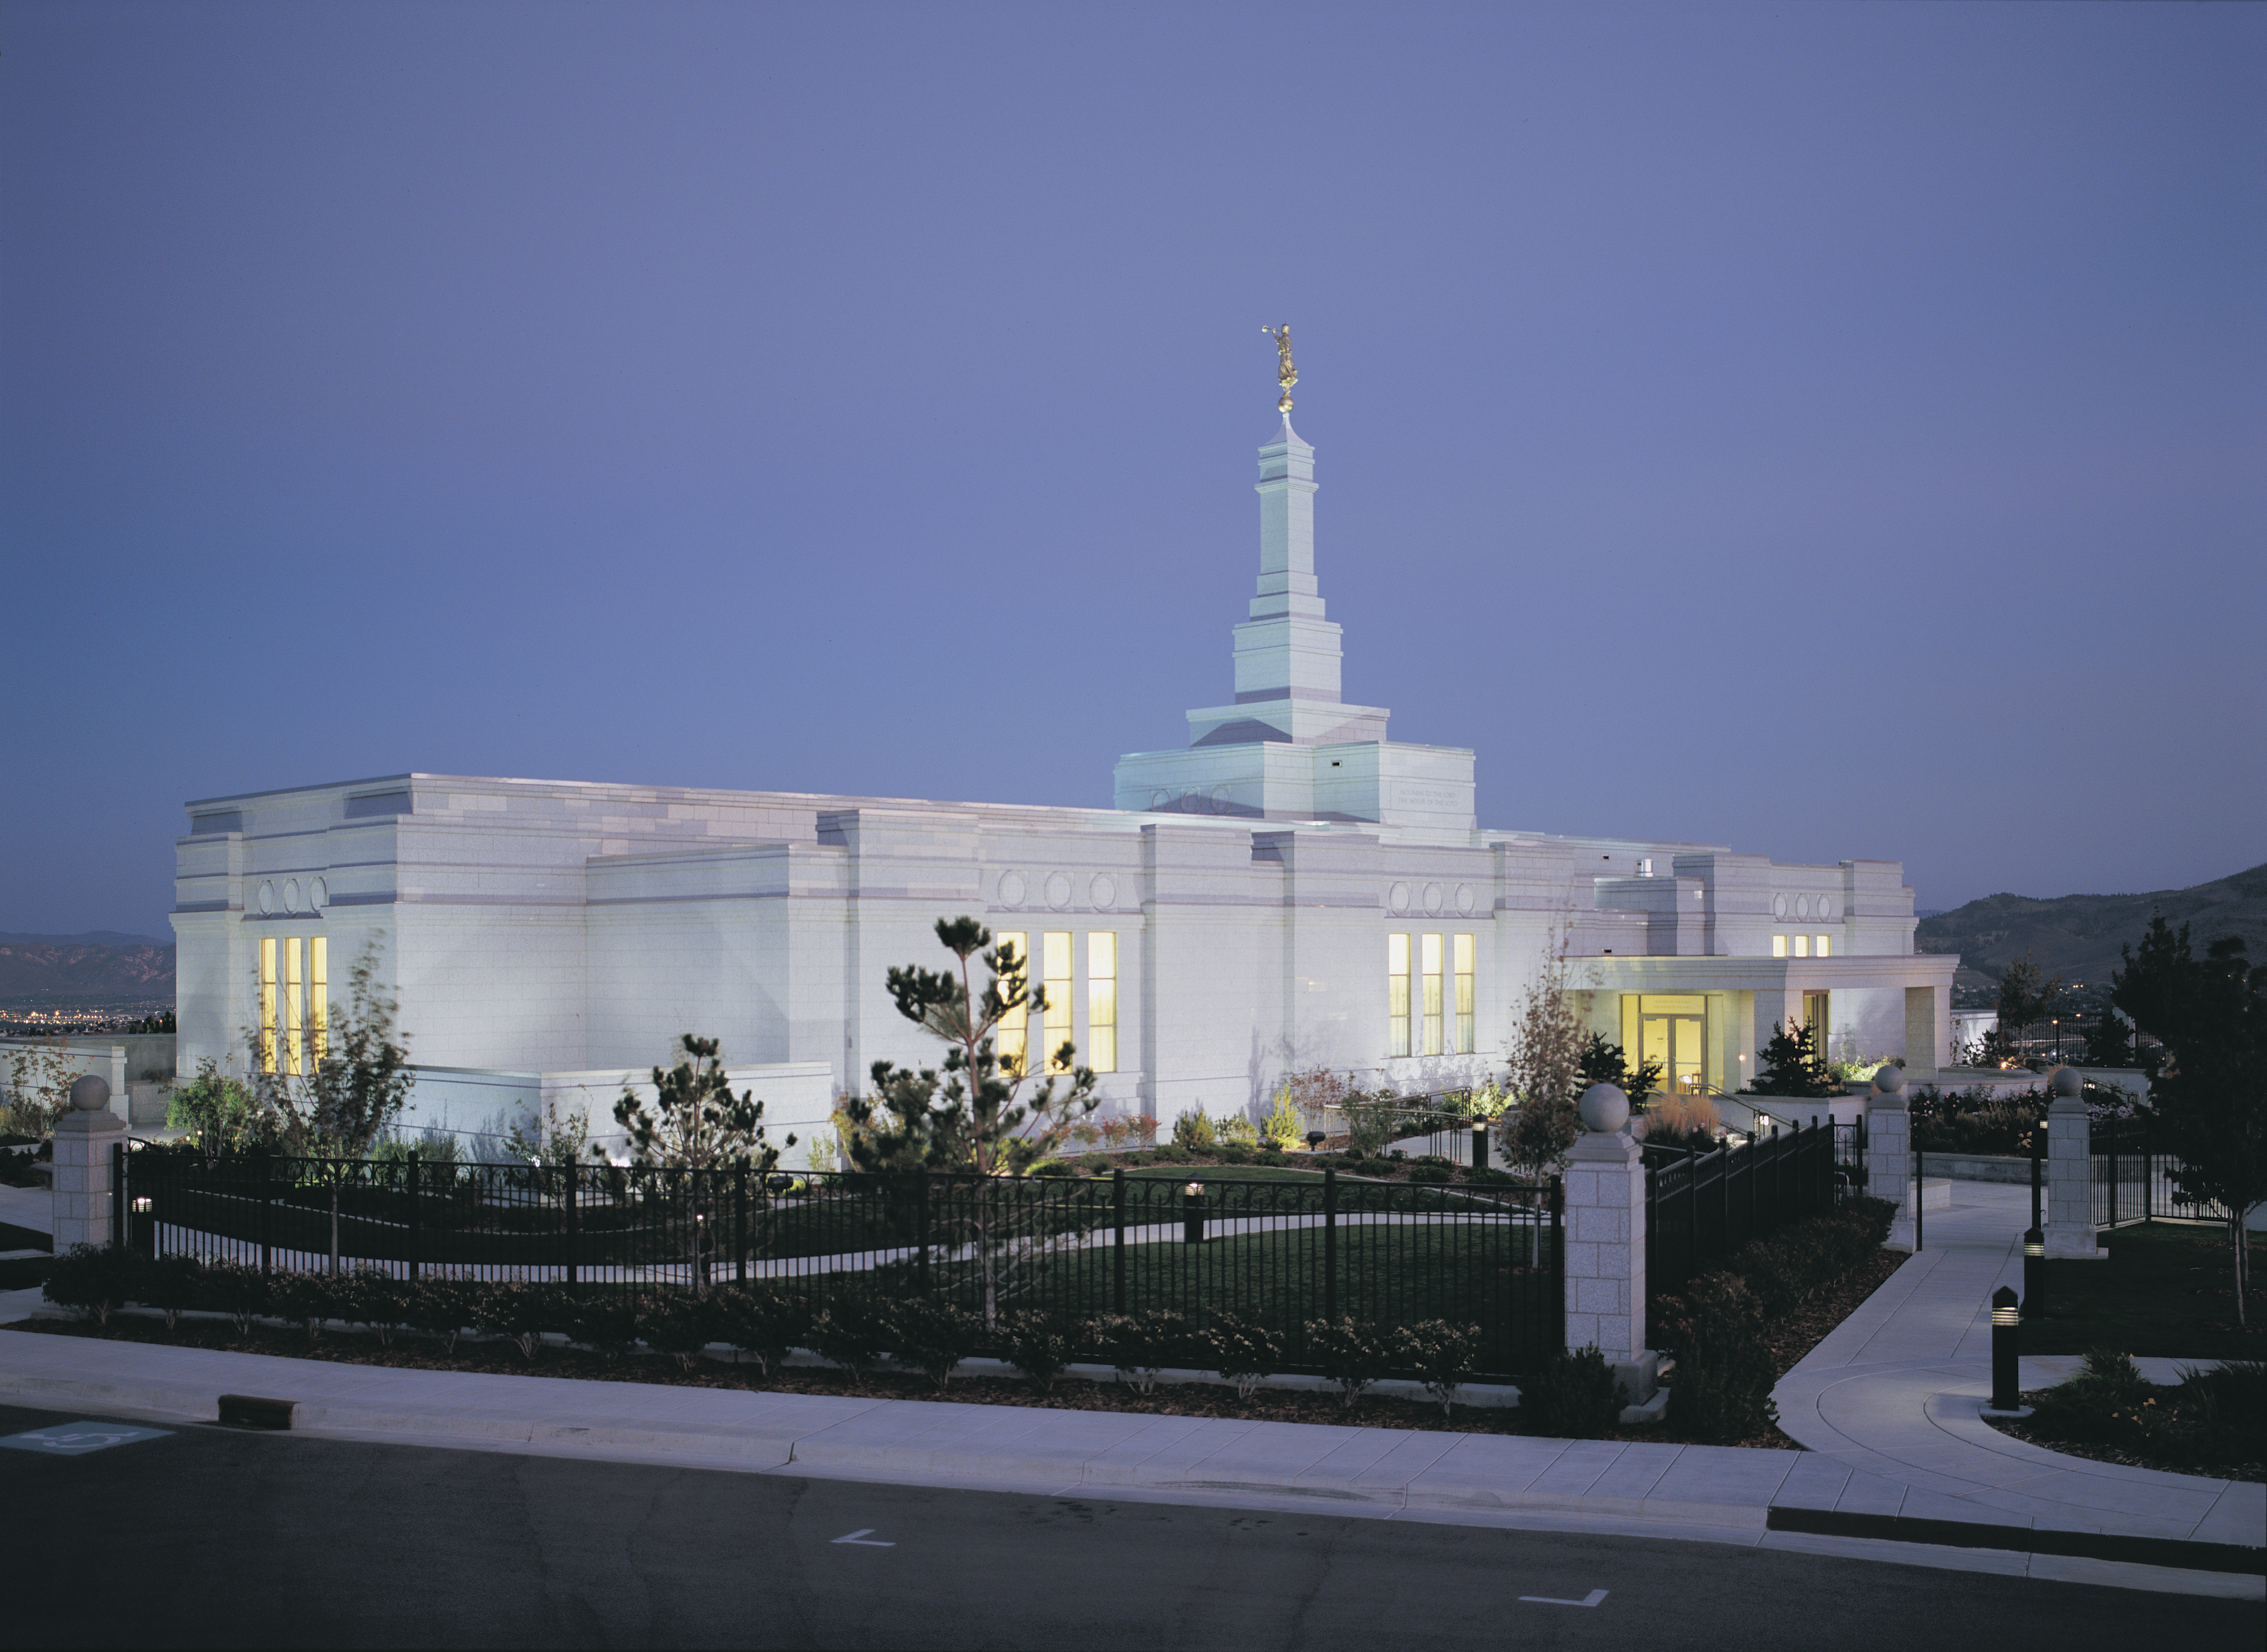 The Reno Nevada Temple in the late evening.